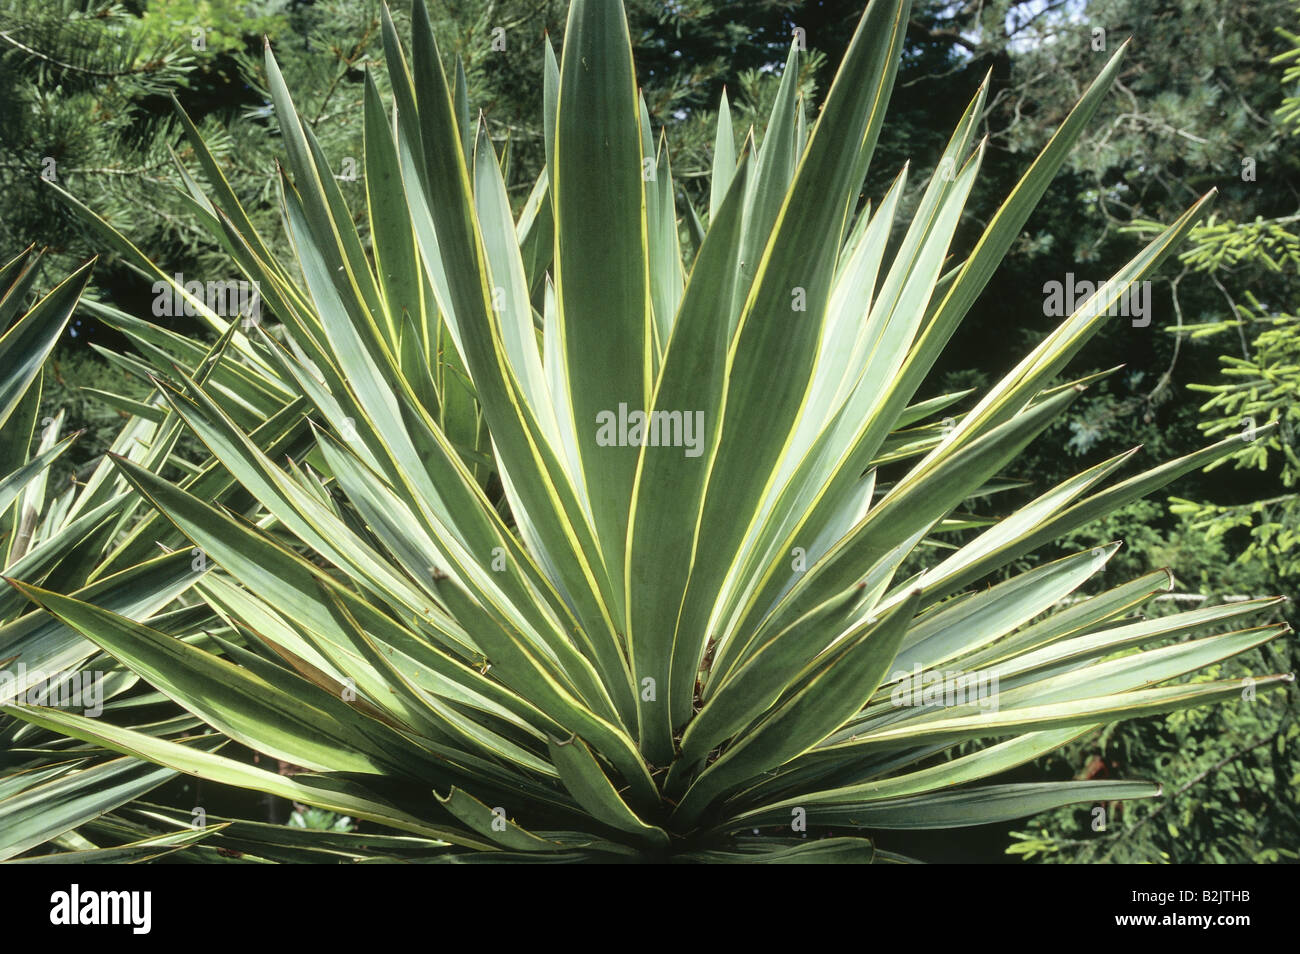 botany, Spanish dagger (Yucca gloriosa Variegata), perennial, Additional-Rights-Clearance-Info-Not-Available - Stock Image